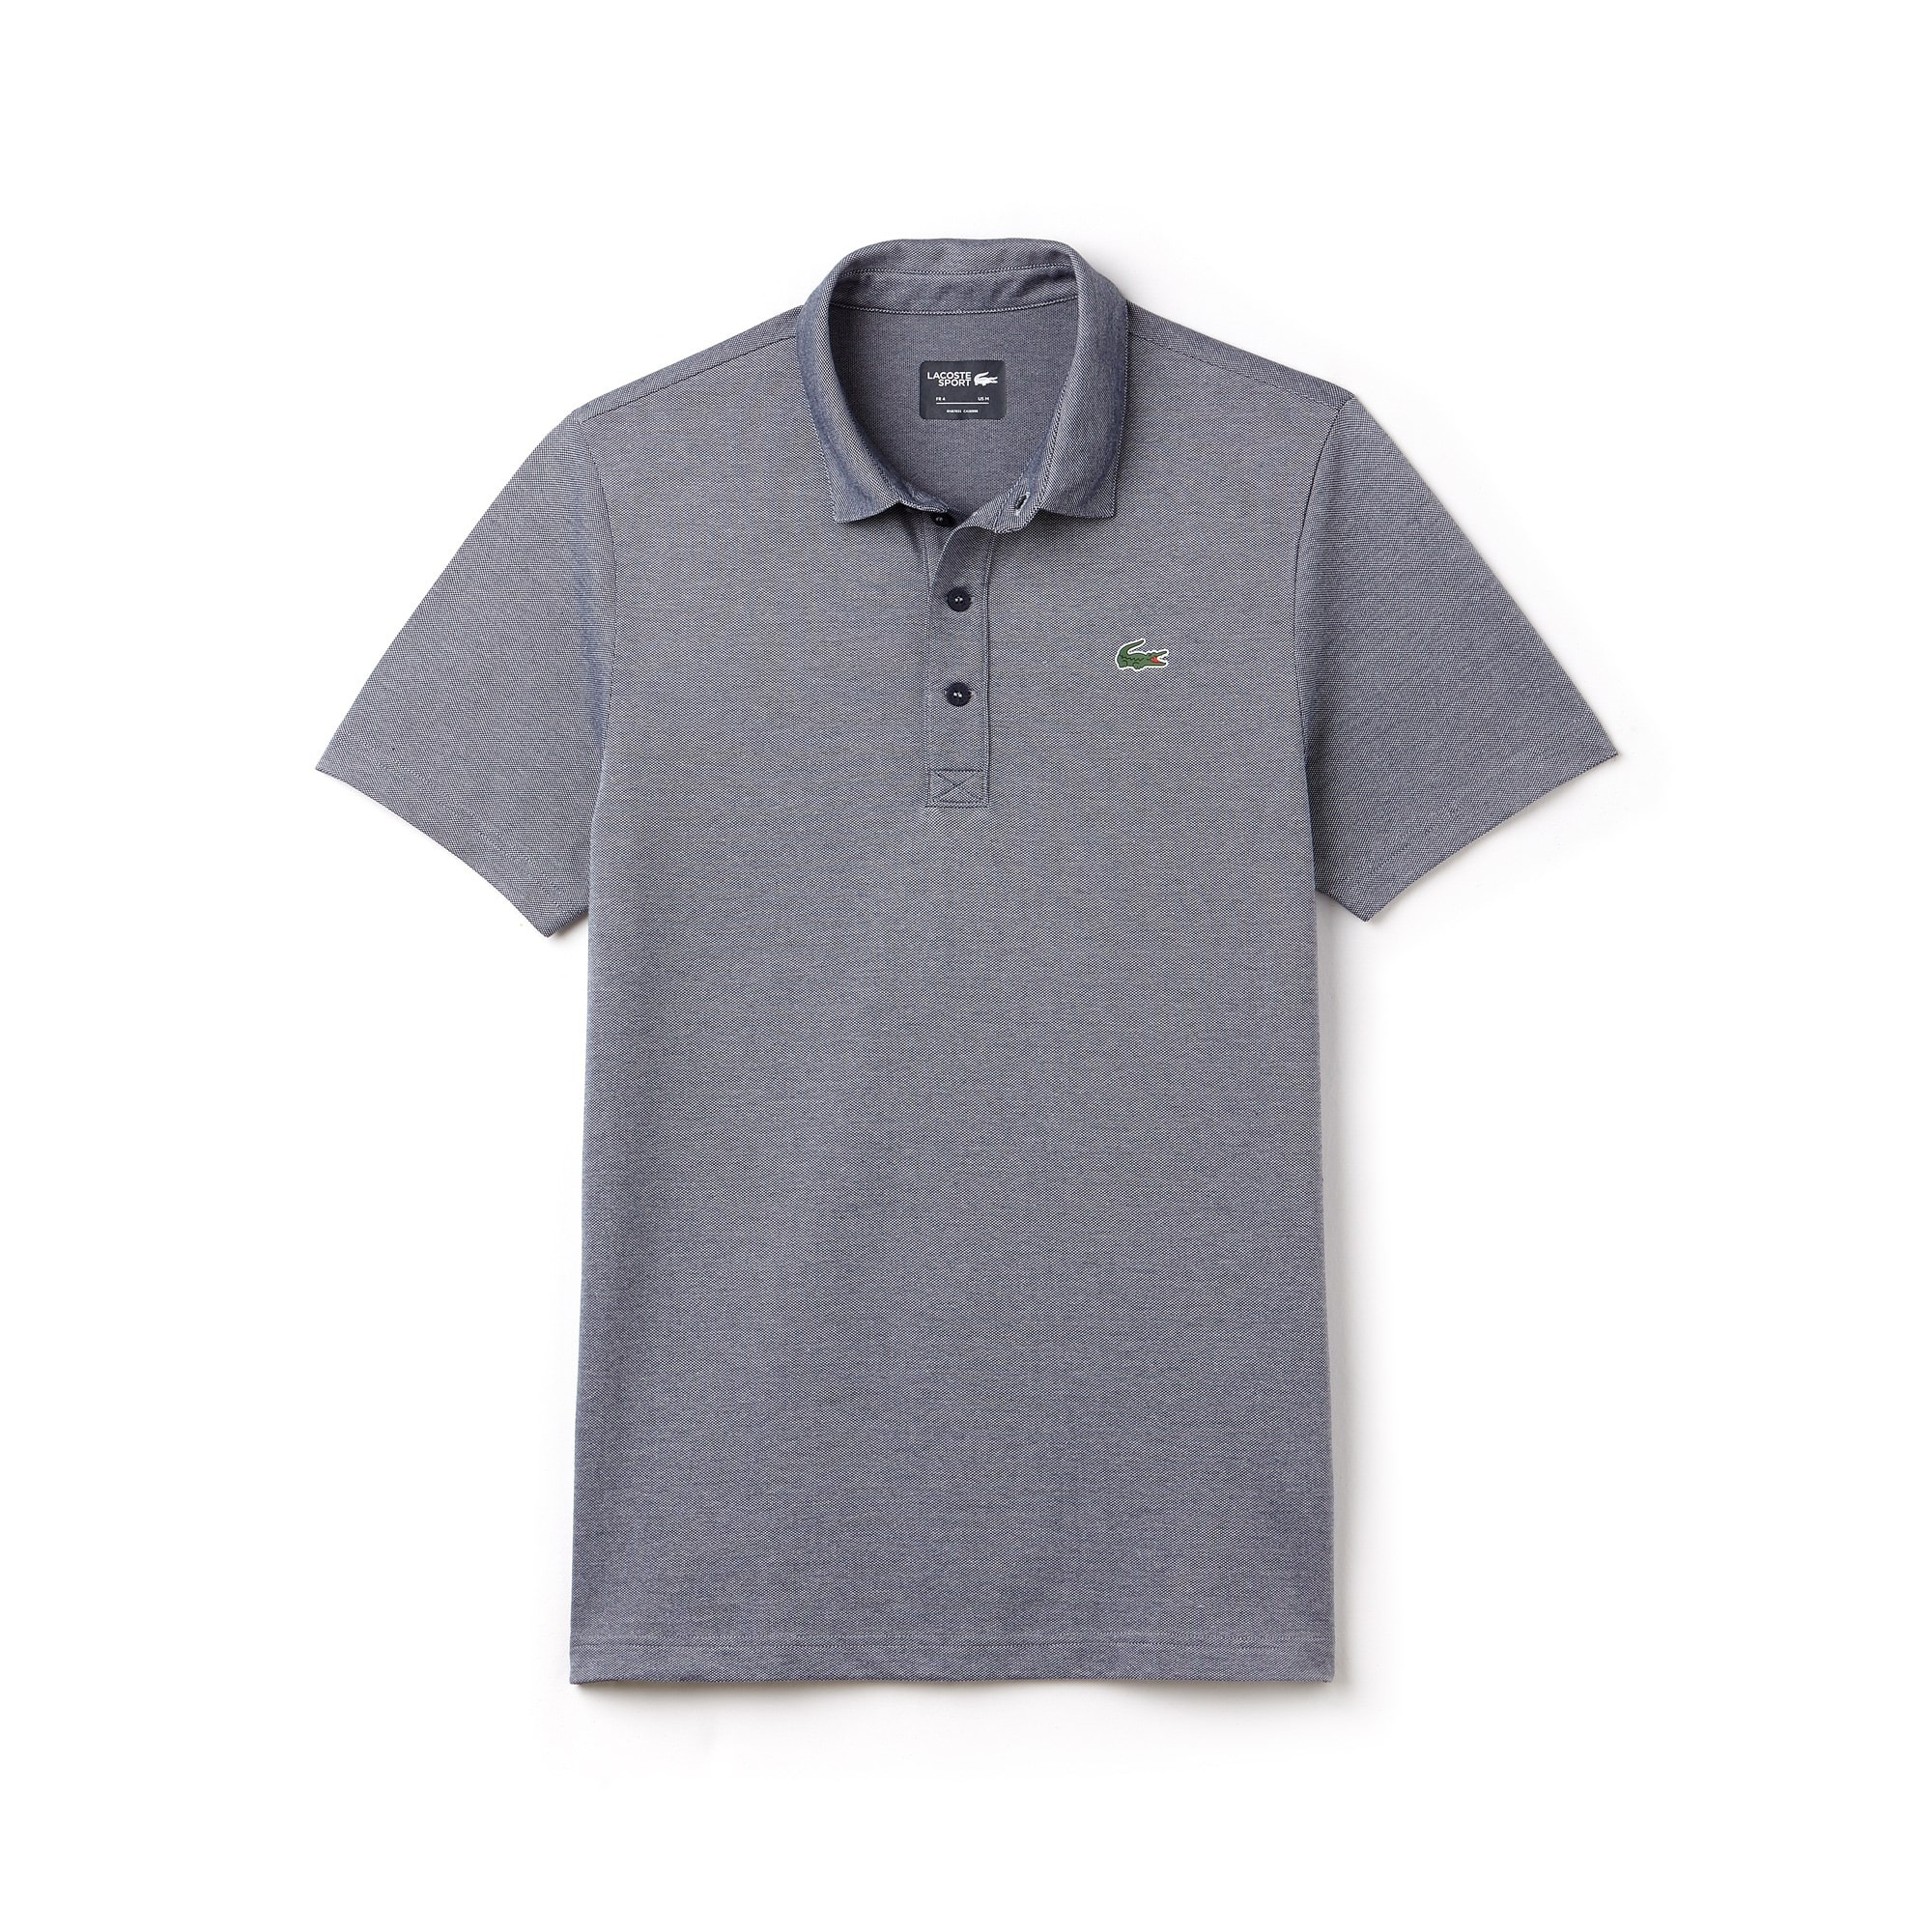 Men's Lacoste SPORT Bicolour Technical Jersey Golf Polo Shirt